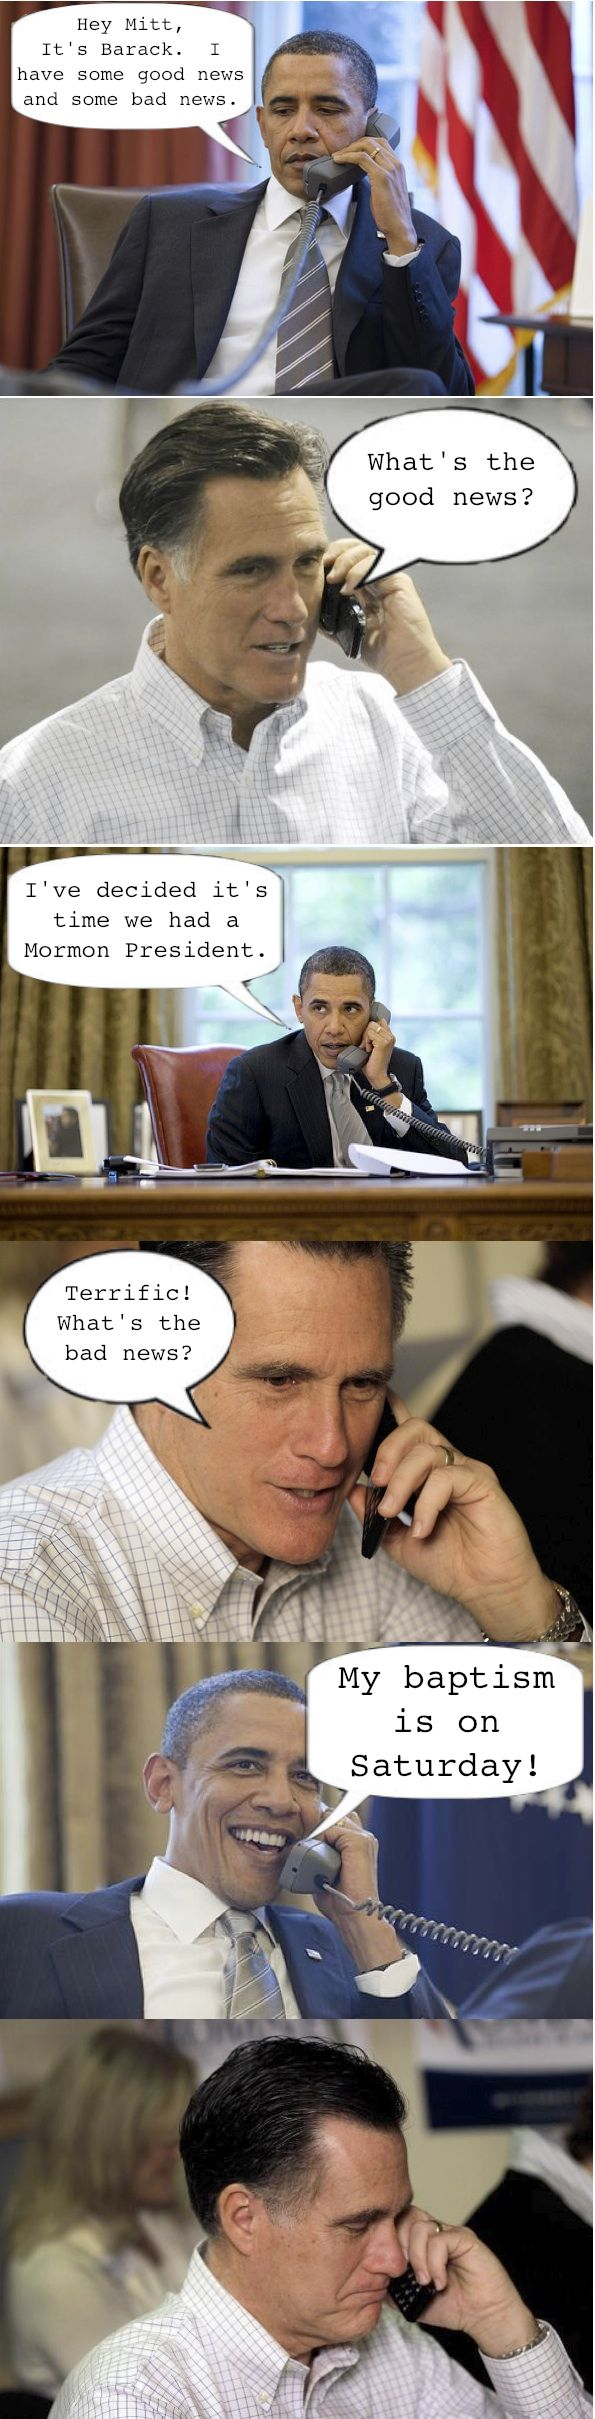 Hahaha. Oh, Mitt.: Lds Funny, Laughing, Mitts Romney, Mormons Presidents, U.S. Presidents, Mormons Humor, Funnies, So Funny, Barack Obama